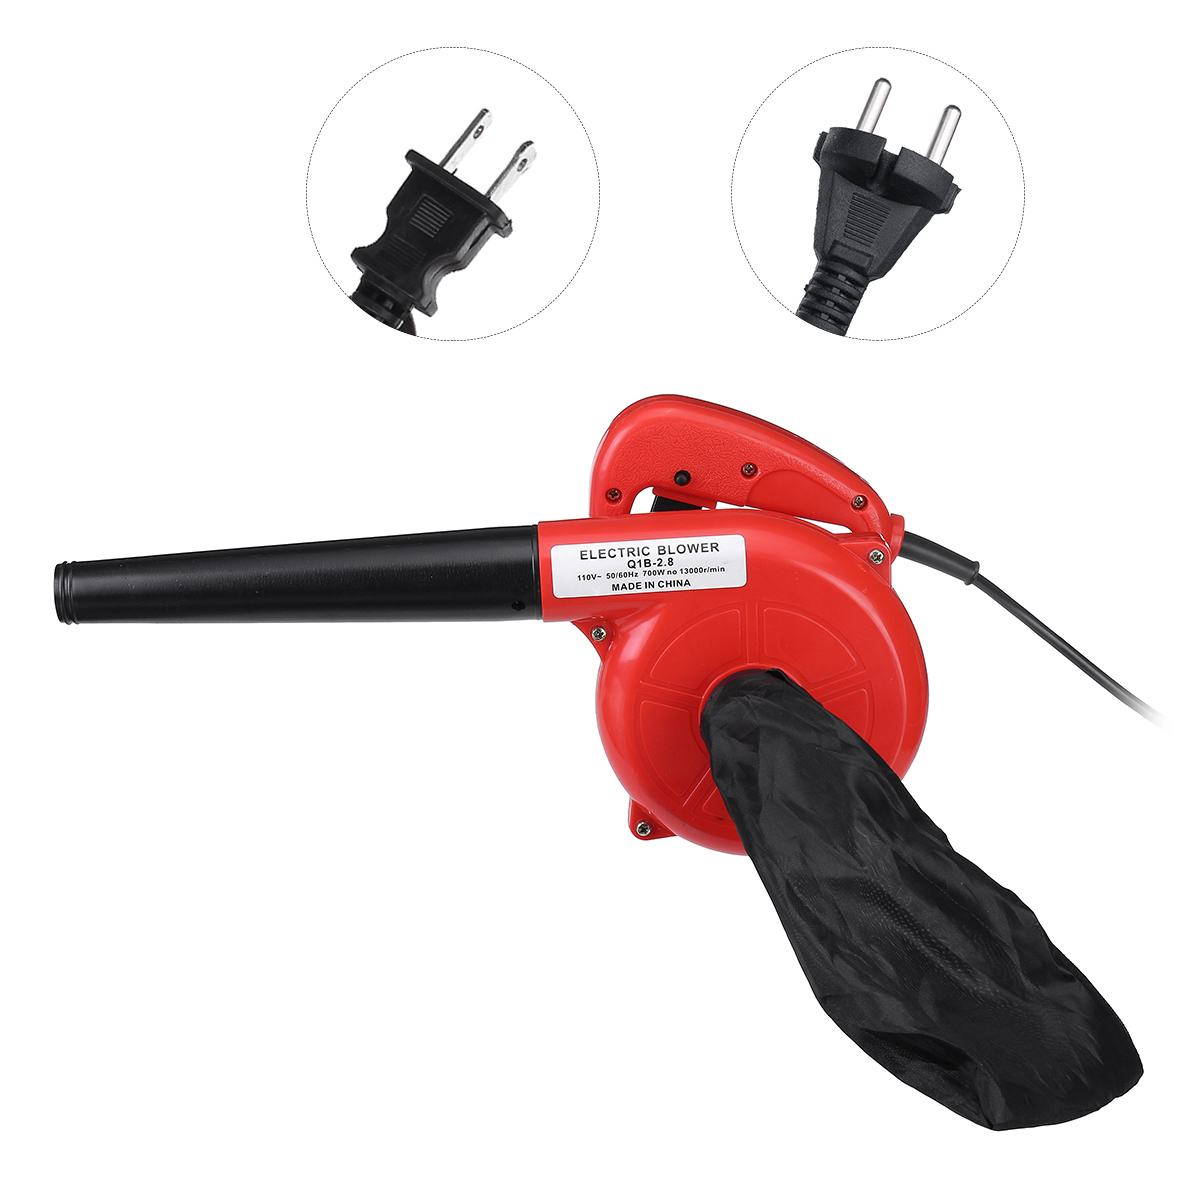 110V/220V 700W Multifunctional Air Blower Computer Cleaning Electric Dust Removal Air Blower Cleaner for Computer